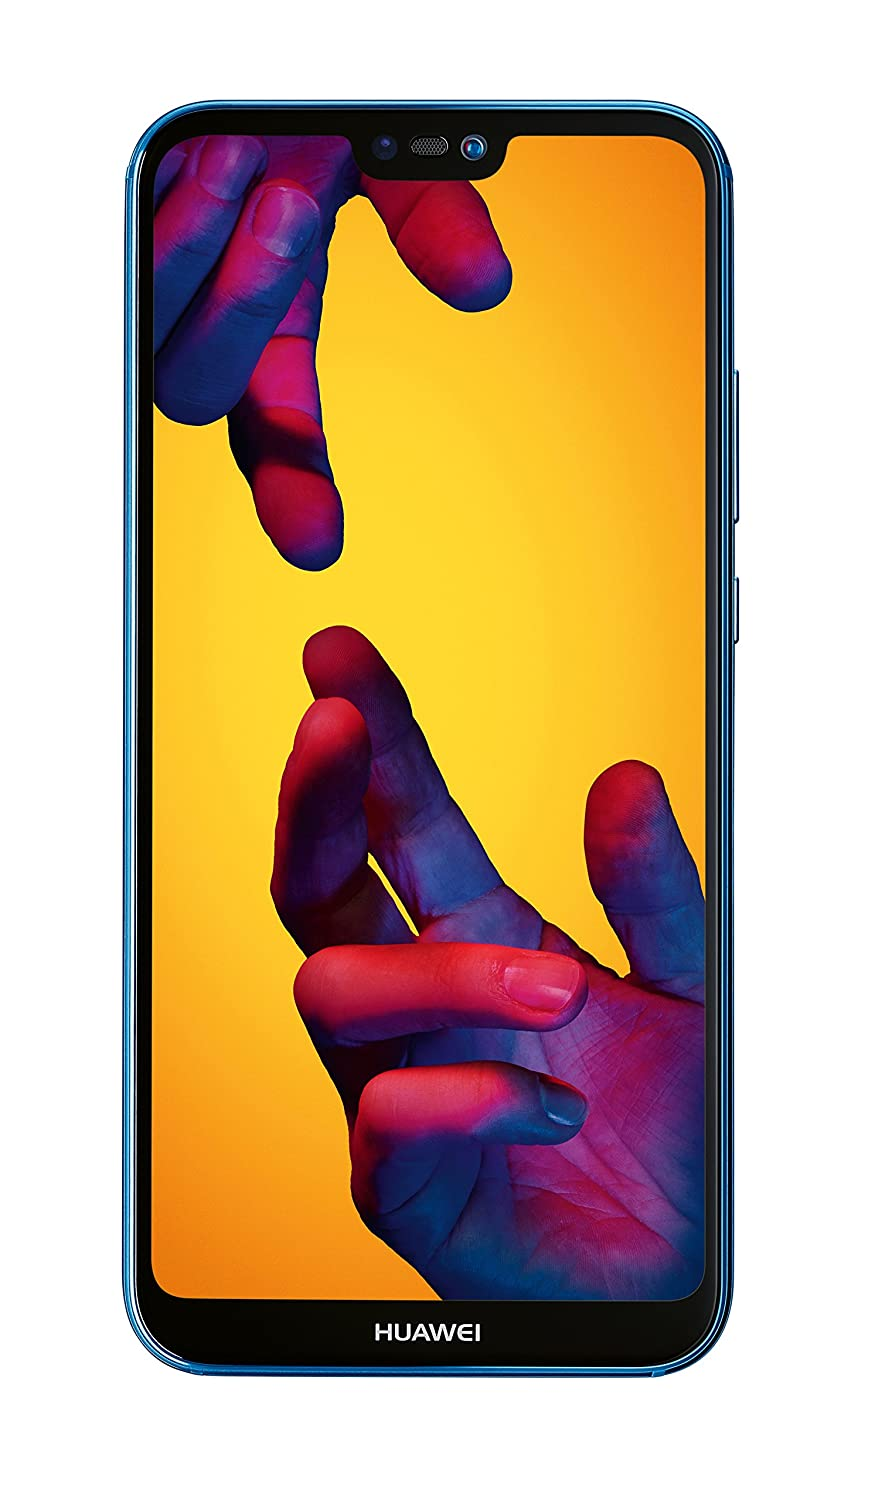 Huawei P20 Lite 64 GB/4 GB Dual SIM Smartphone - Klein Blue (West European Version)